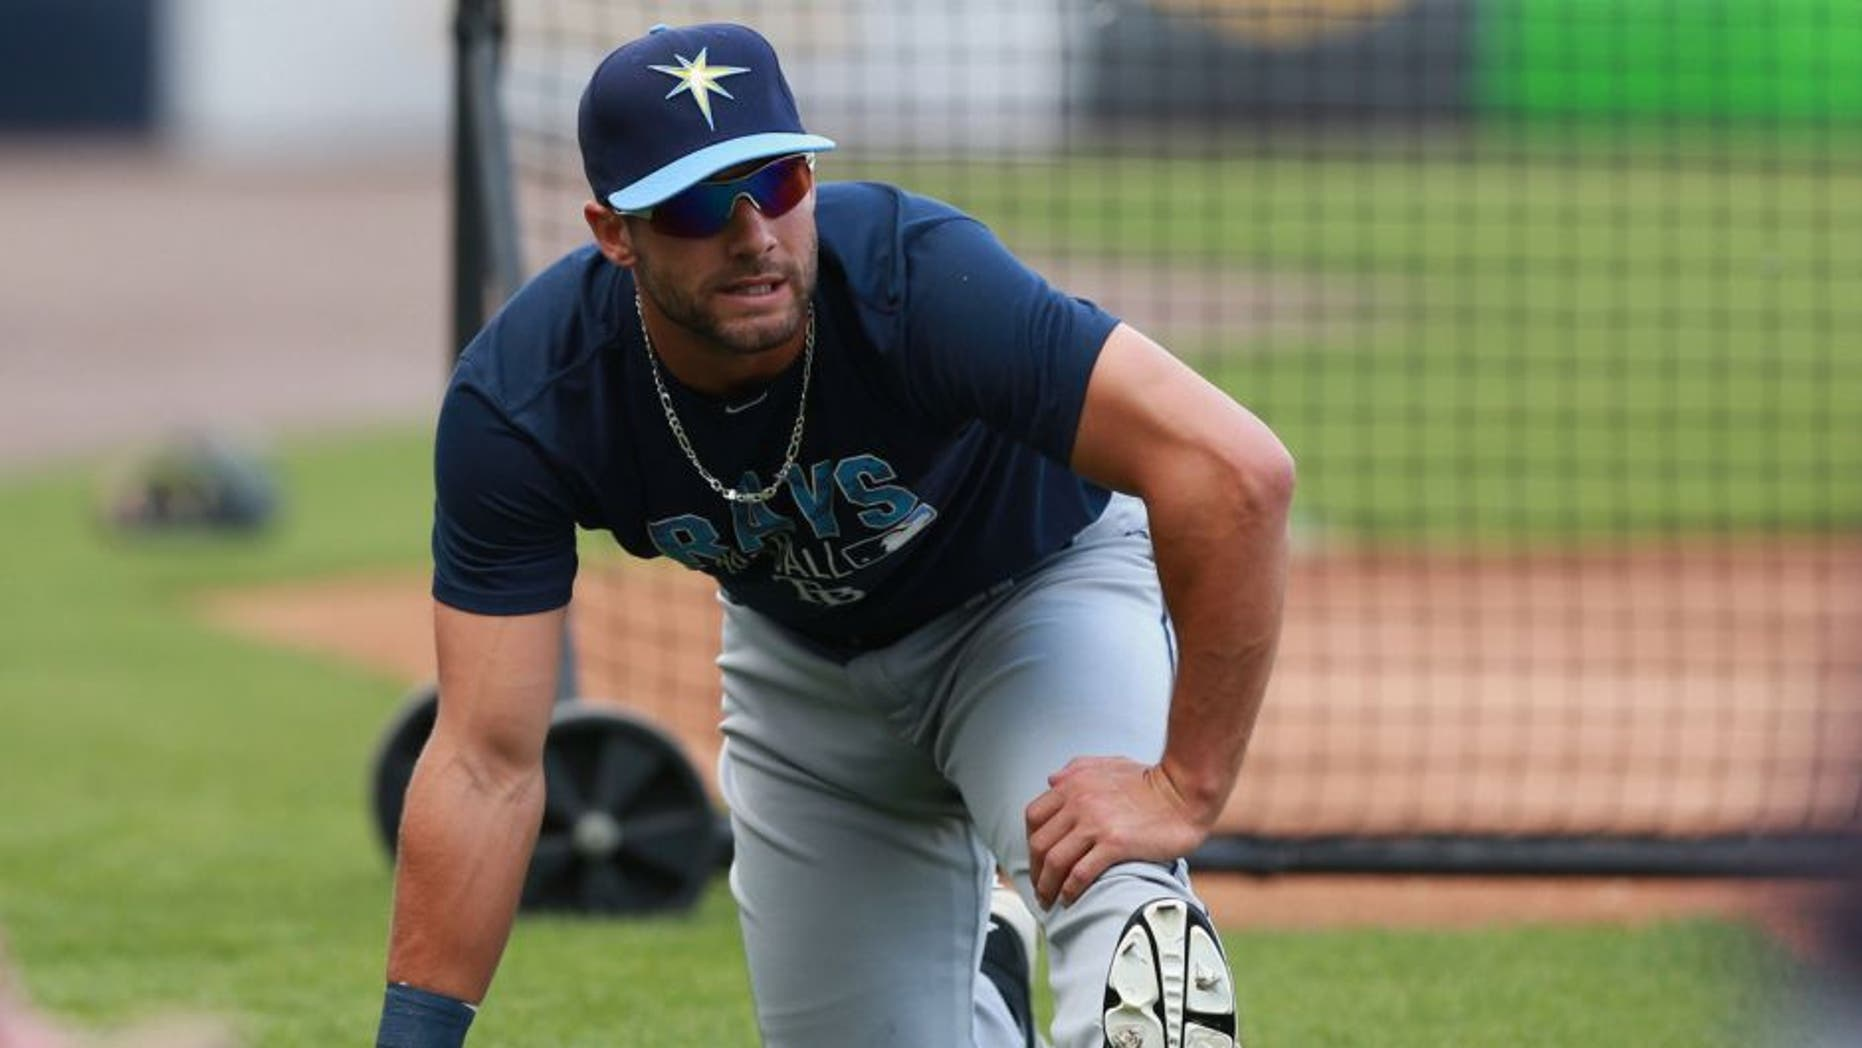 Mar 24, 2016; Tampa, FL, USA; Tampa Bay Rays center fielder Kevin Kiermaier (39) works out prior to the game at George M. Steinbrenner Field. Mandatory Credit: Kim Klement-USA TODAY Sports